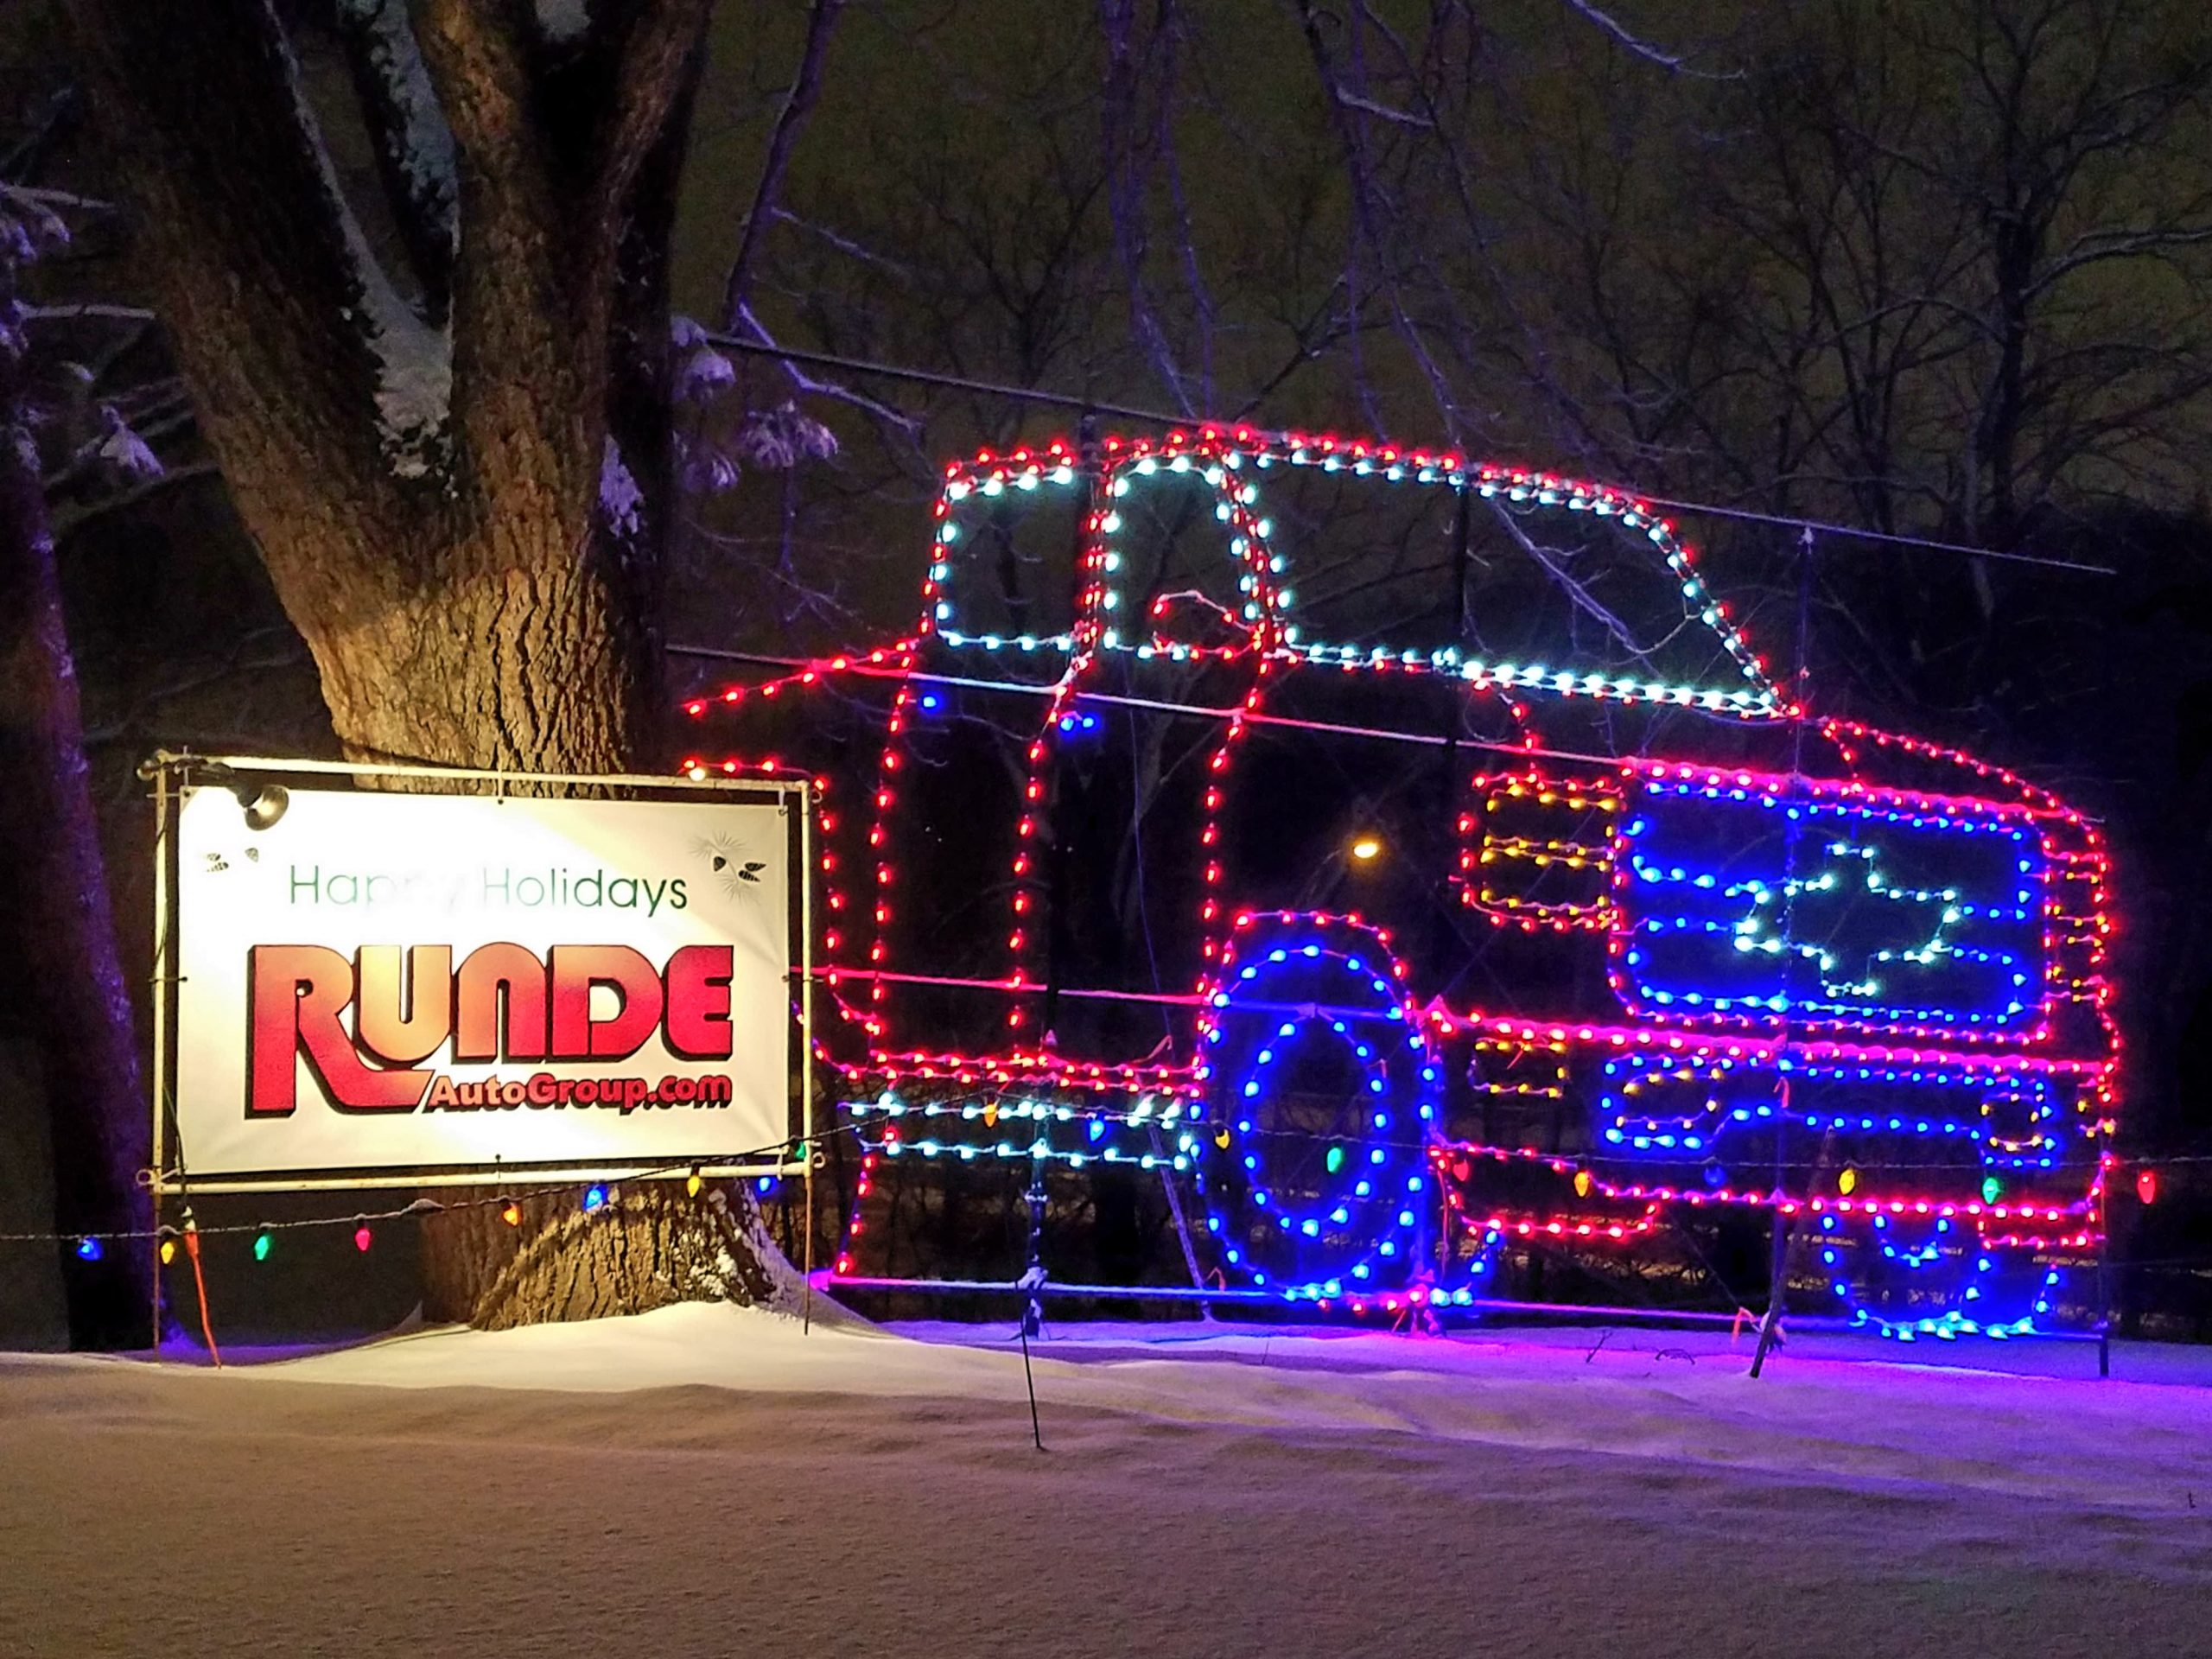 Runde Chevrolet Silverado light display at Reflections in the Park